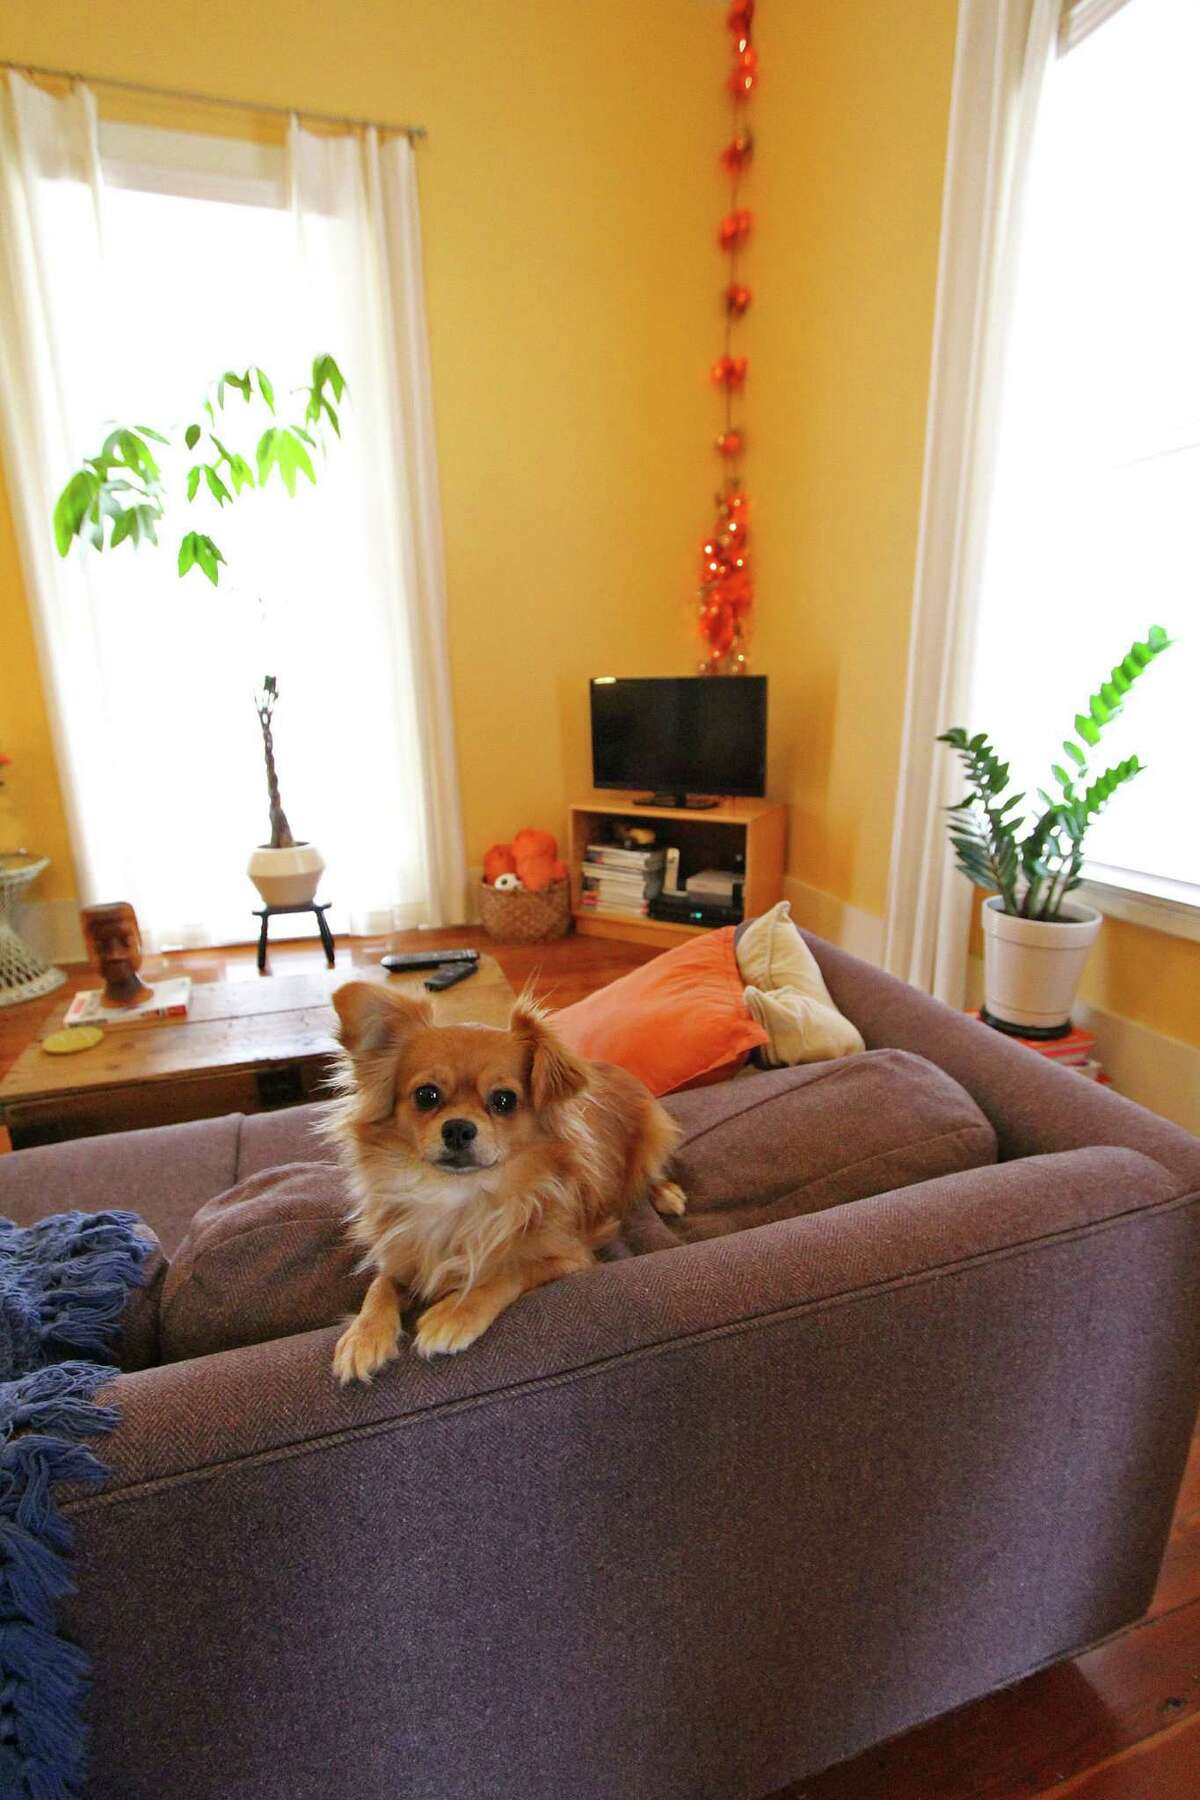 John Duvall?'s dog, Reba McEntire, makes herself at home on the living room sofa.